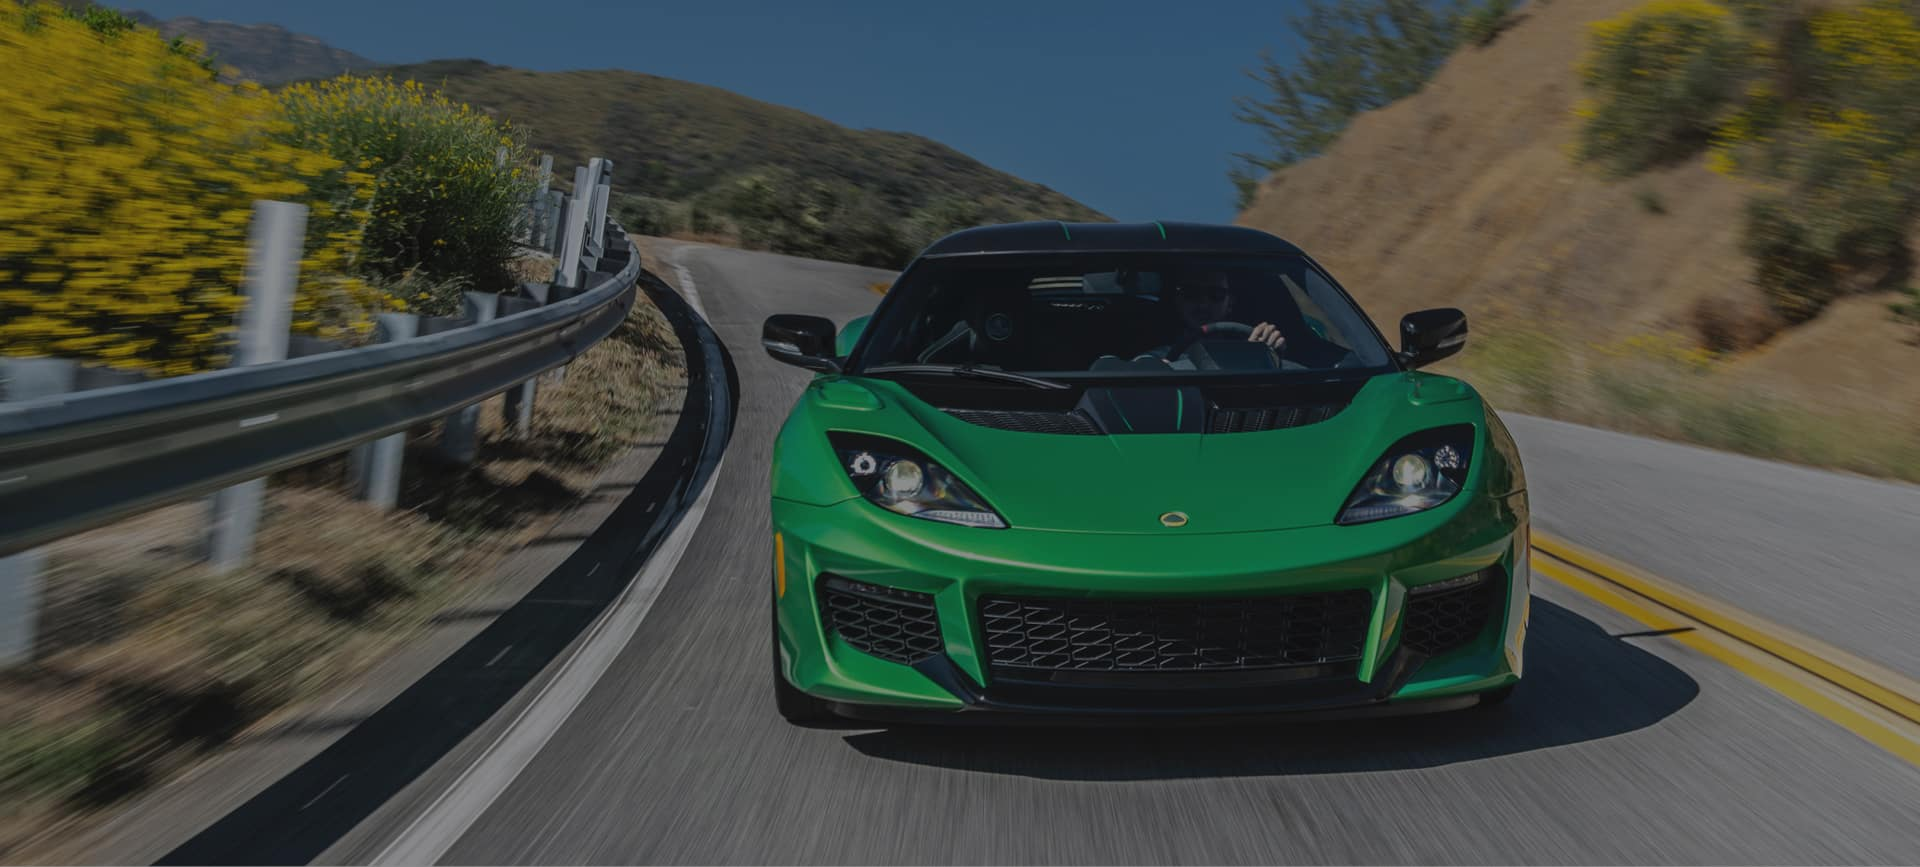 Green Lotus Driving Down Highway